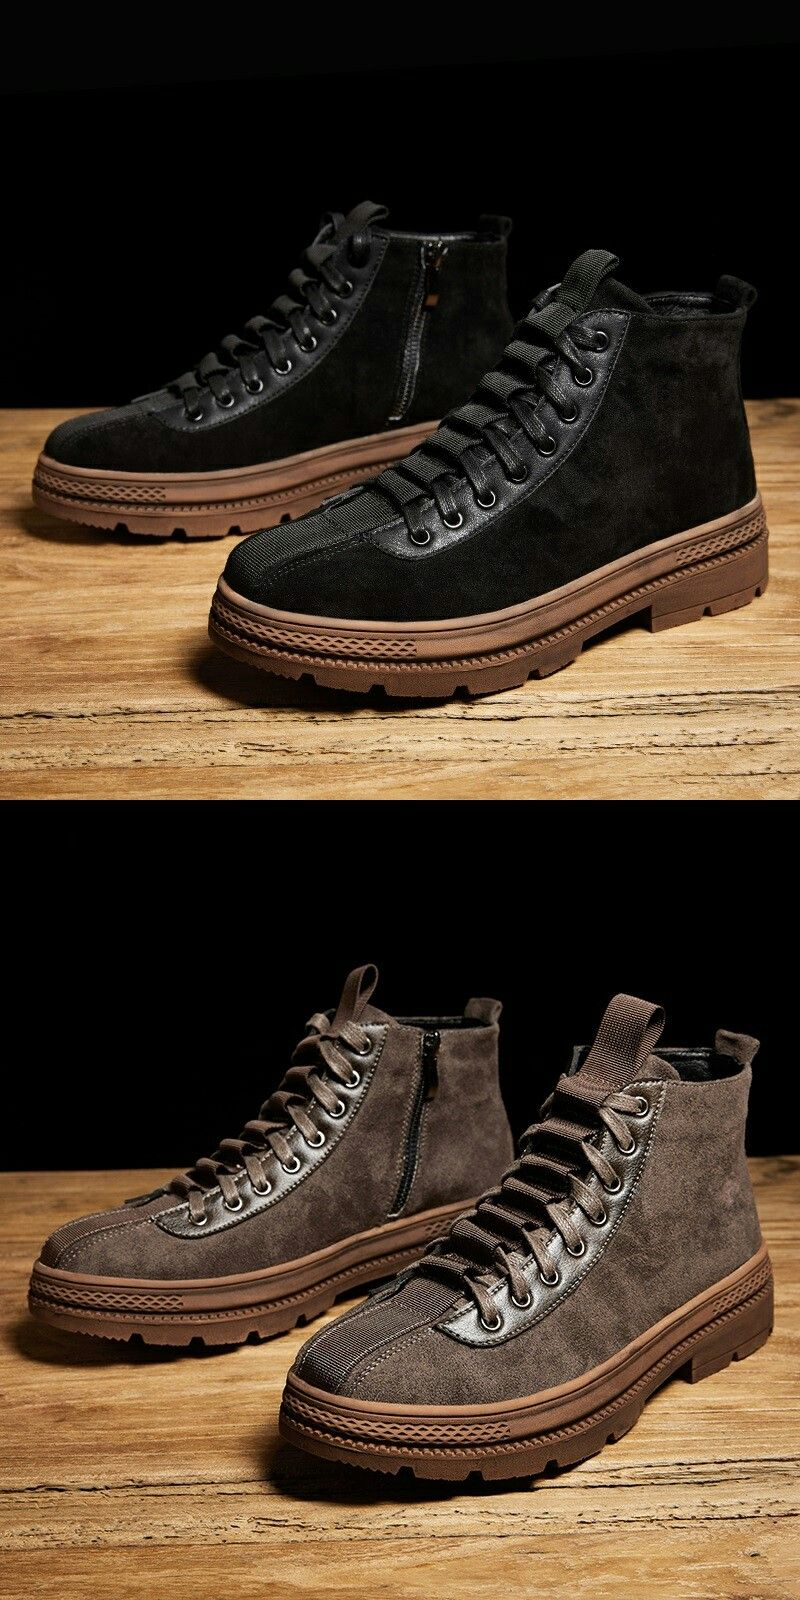 Prelesty Winter Men Desert Boots Formal Autumn Shoes Casual High Top Warm Leather